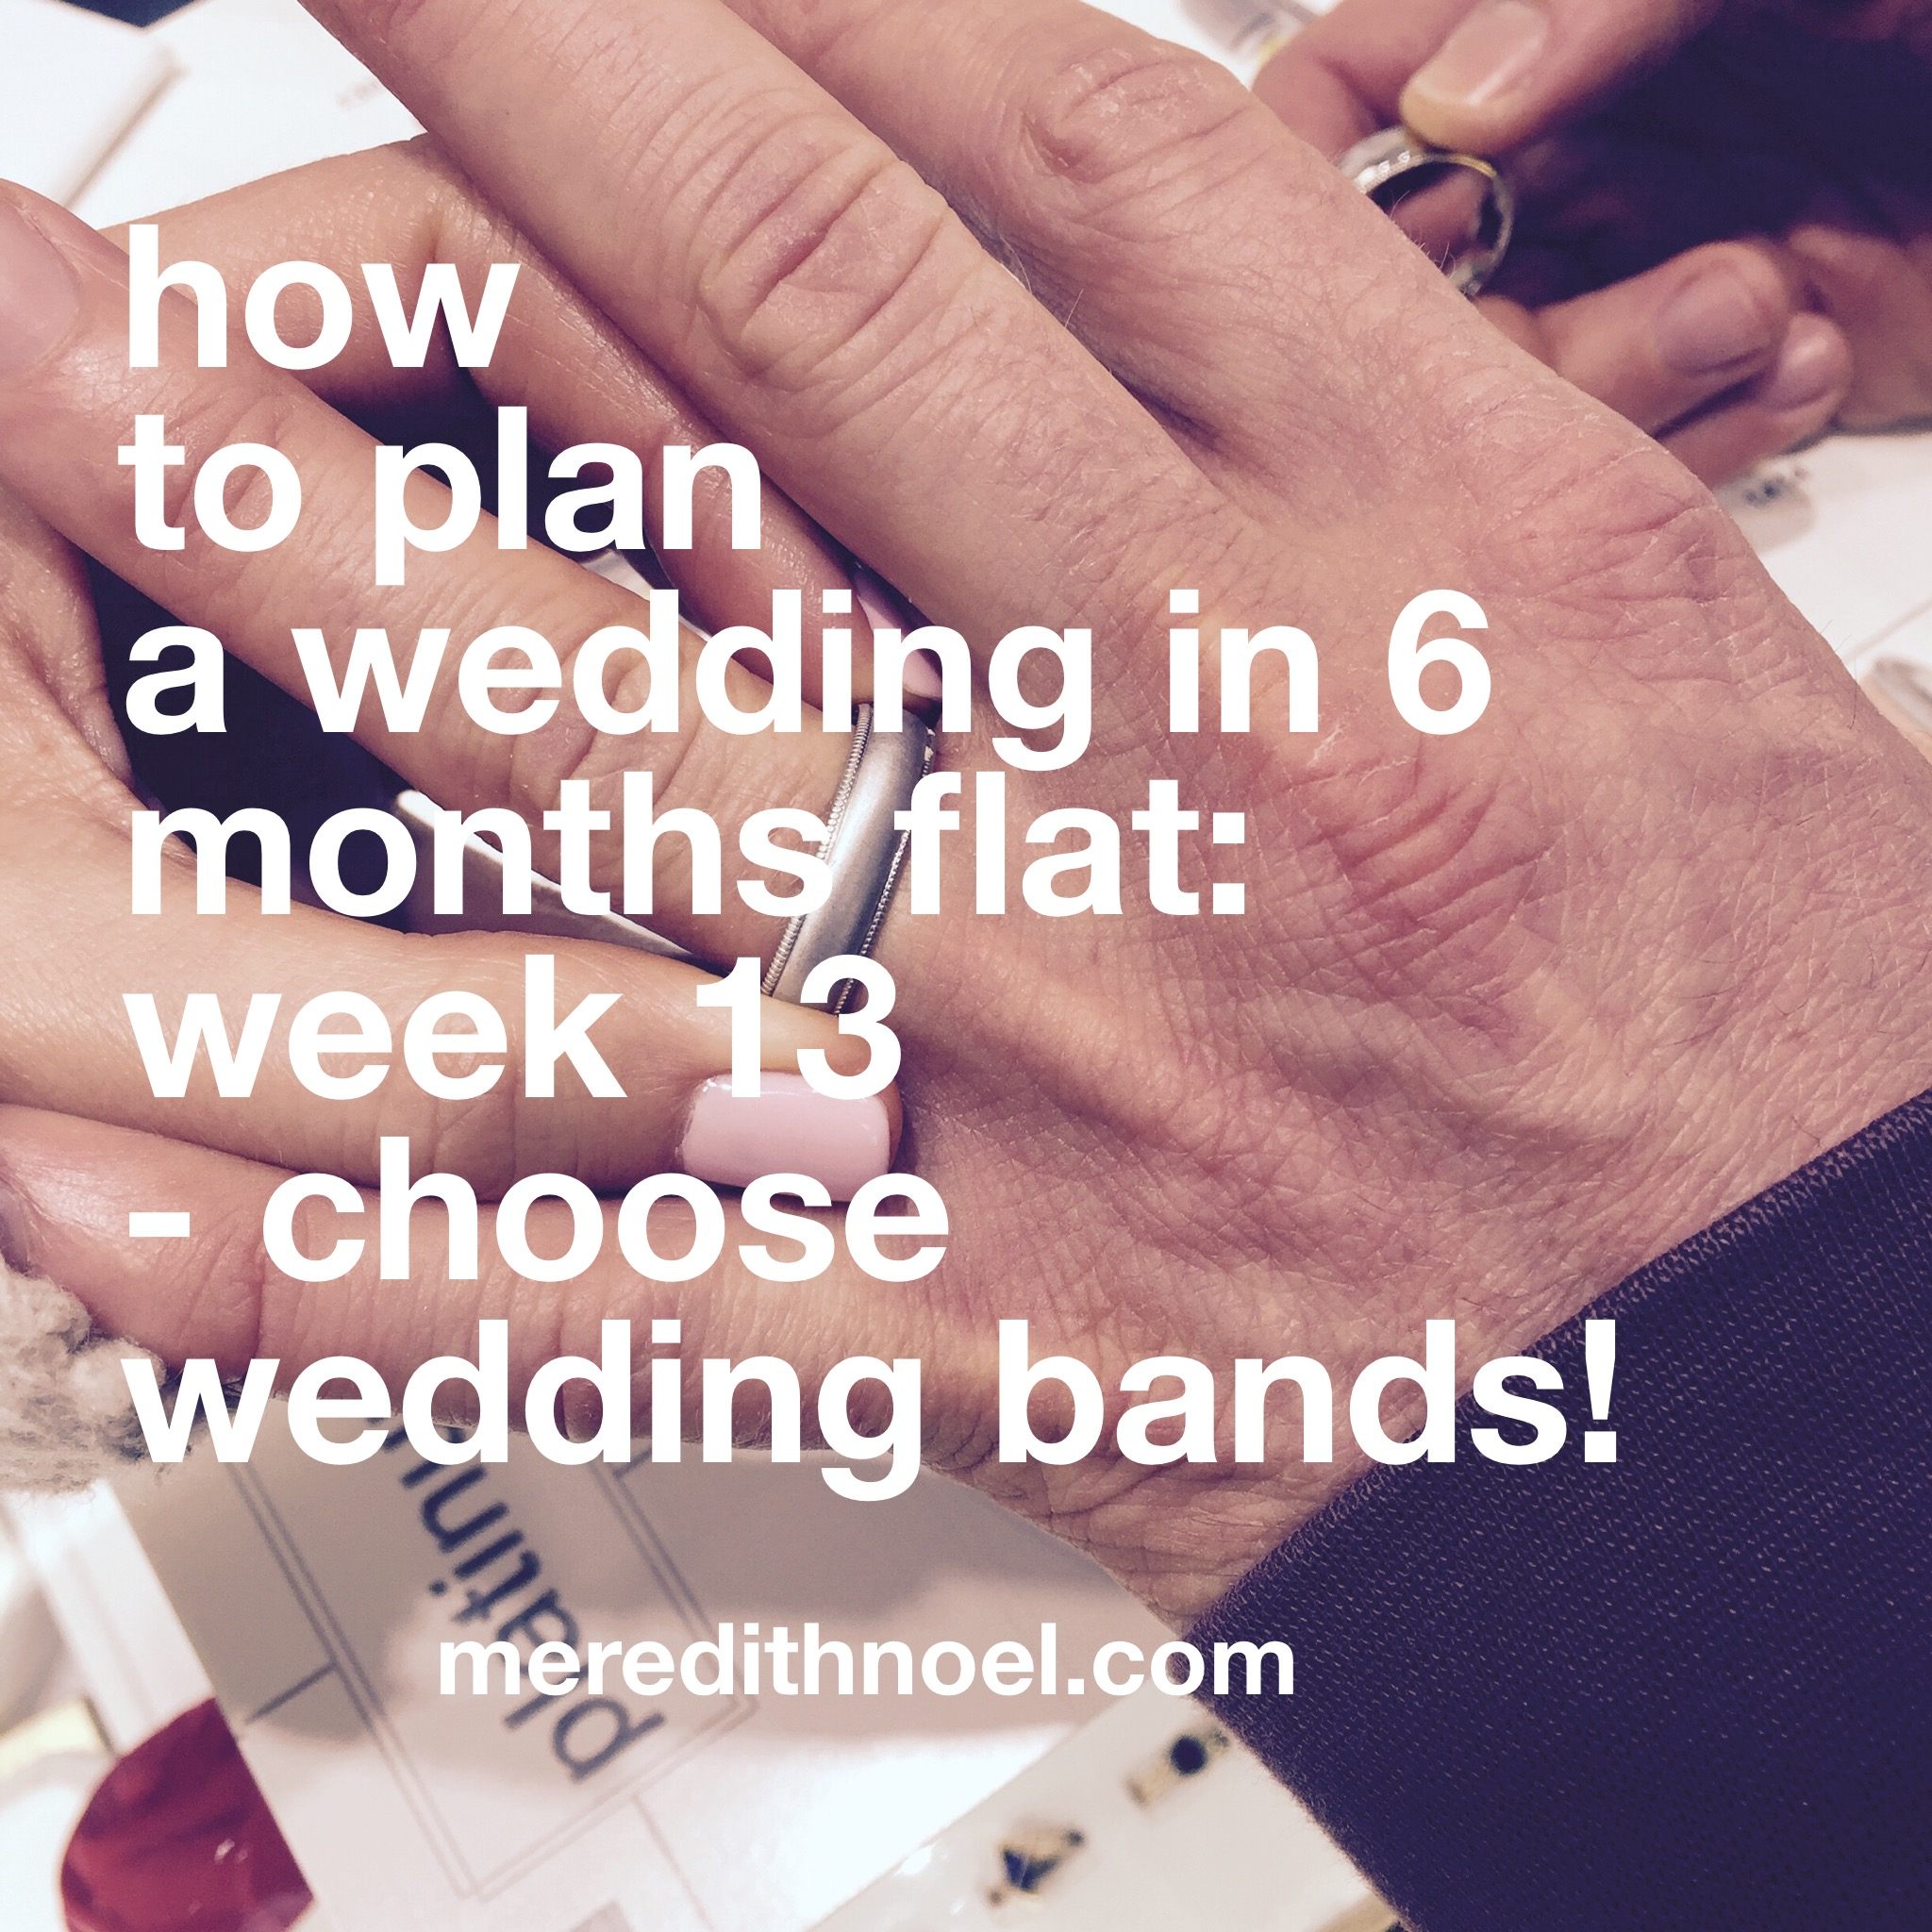 How To Plan A Wedding In 6 Months Flat: Week 13